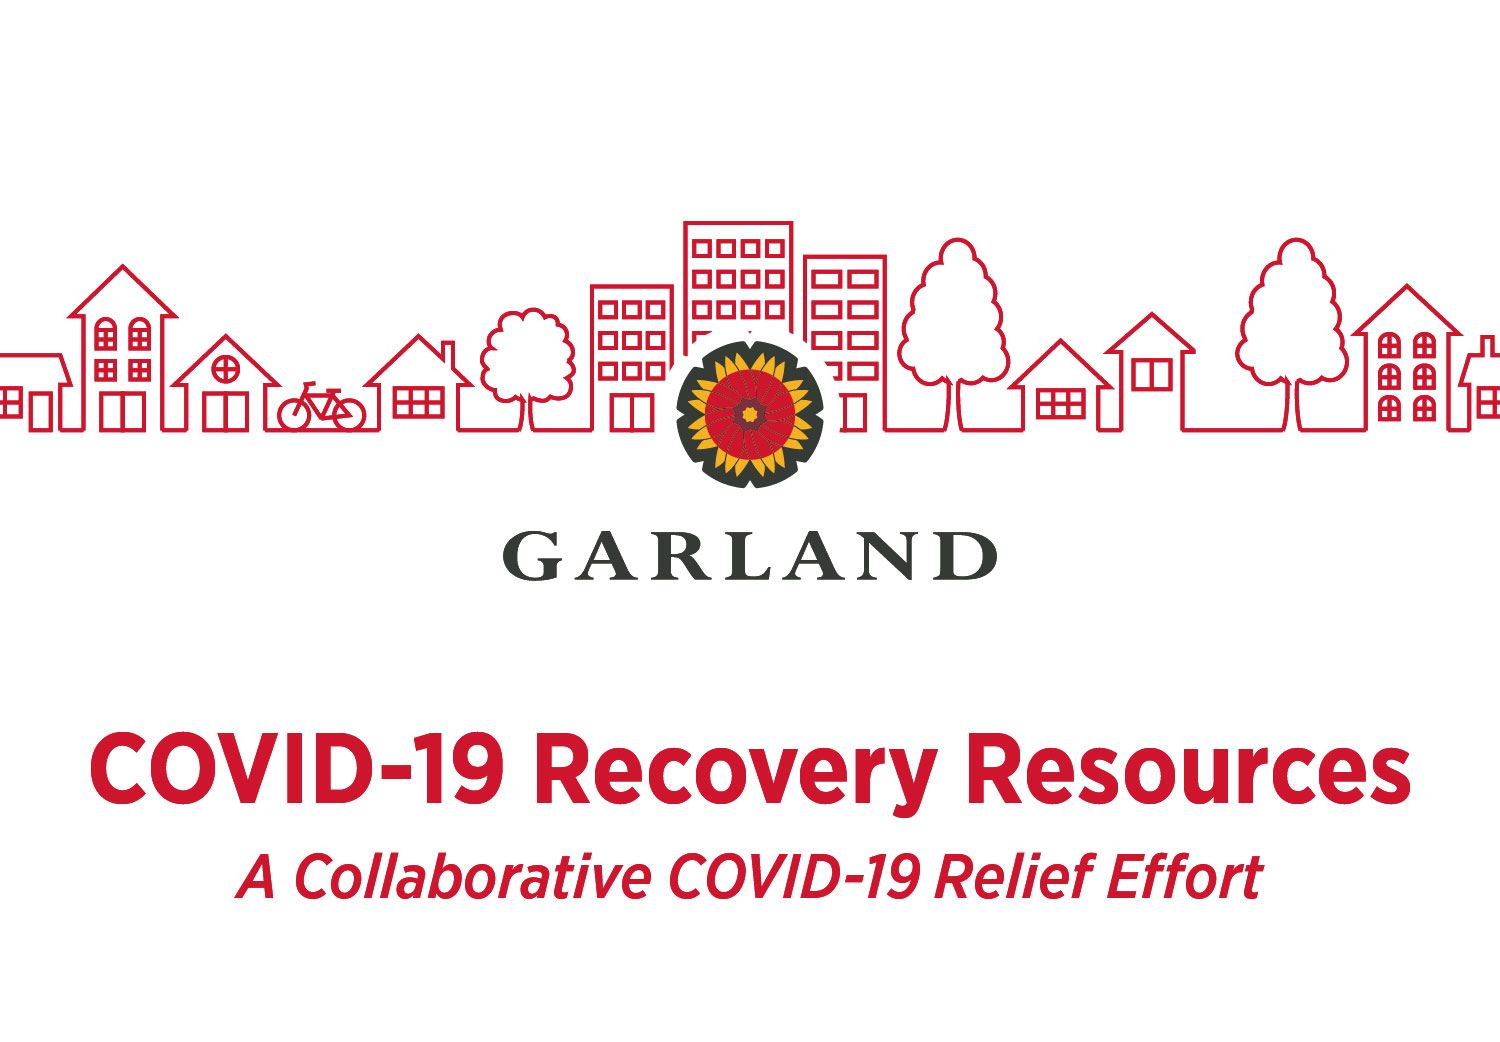 COVID19 - Recovery Resources logo